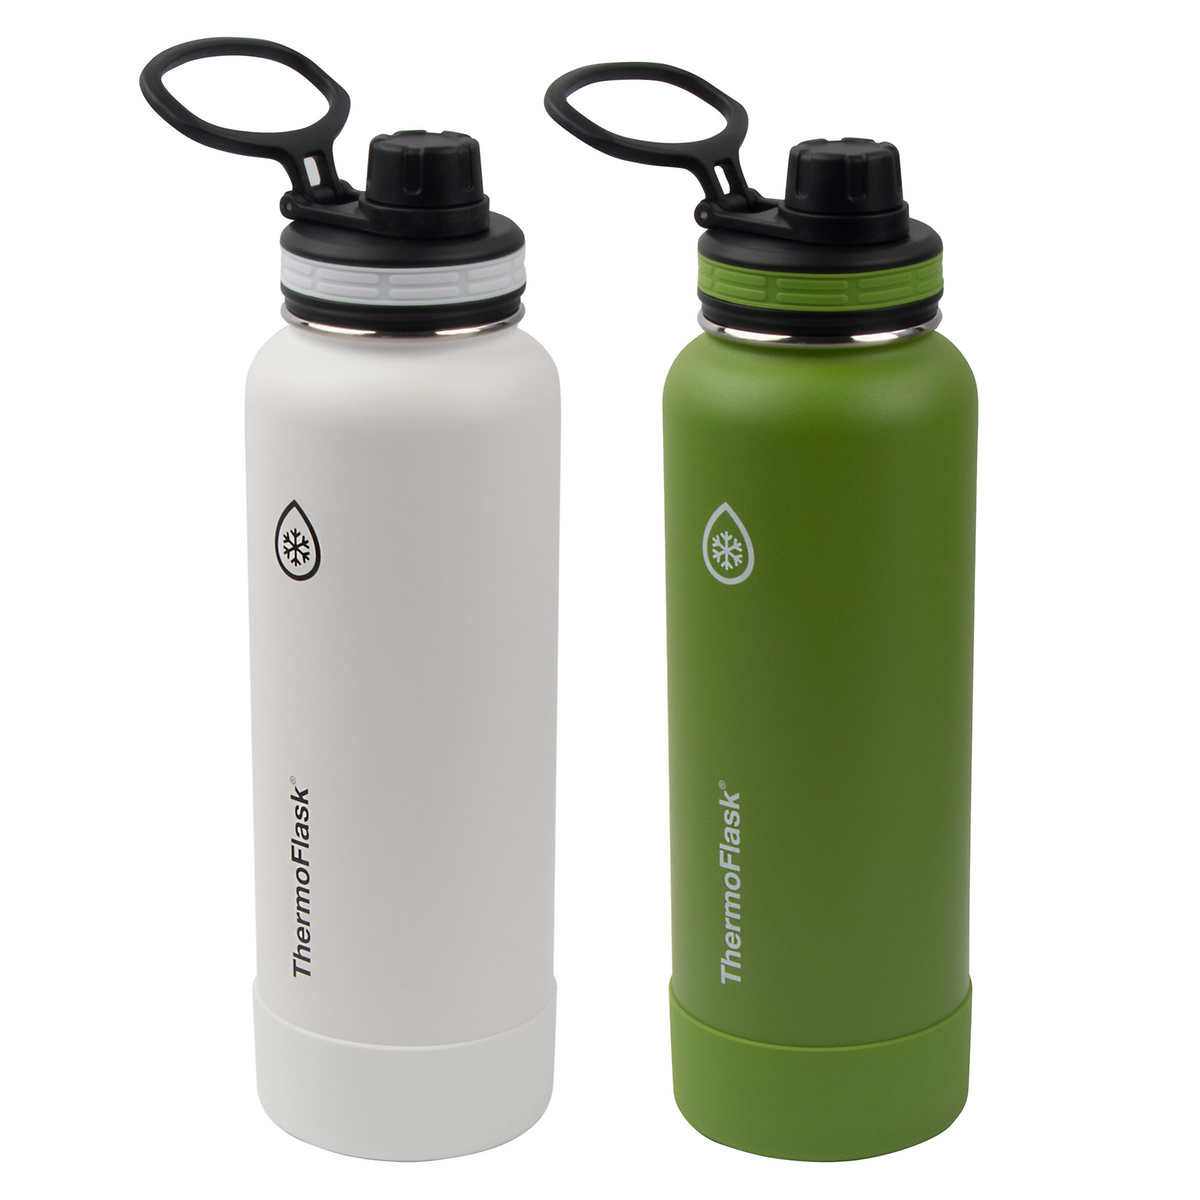 Wide Mouth Stainless Steel Sports Water Bottle With Clip 25 oz 2 Pack